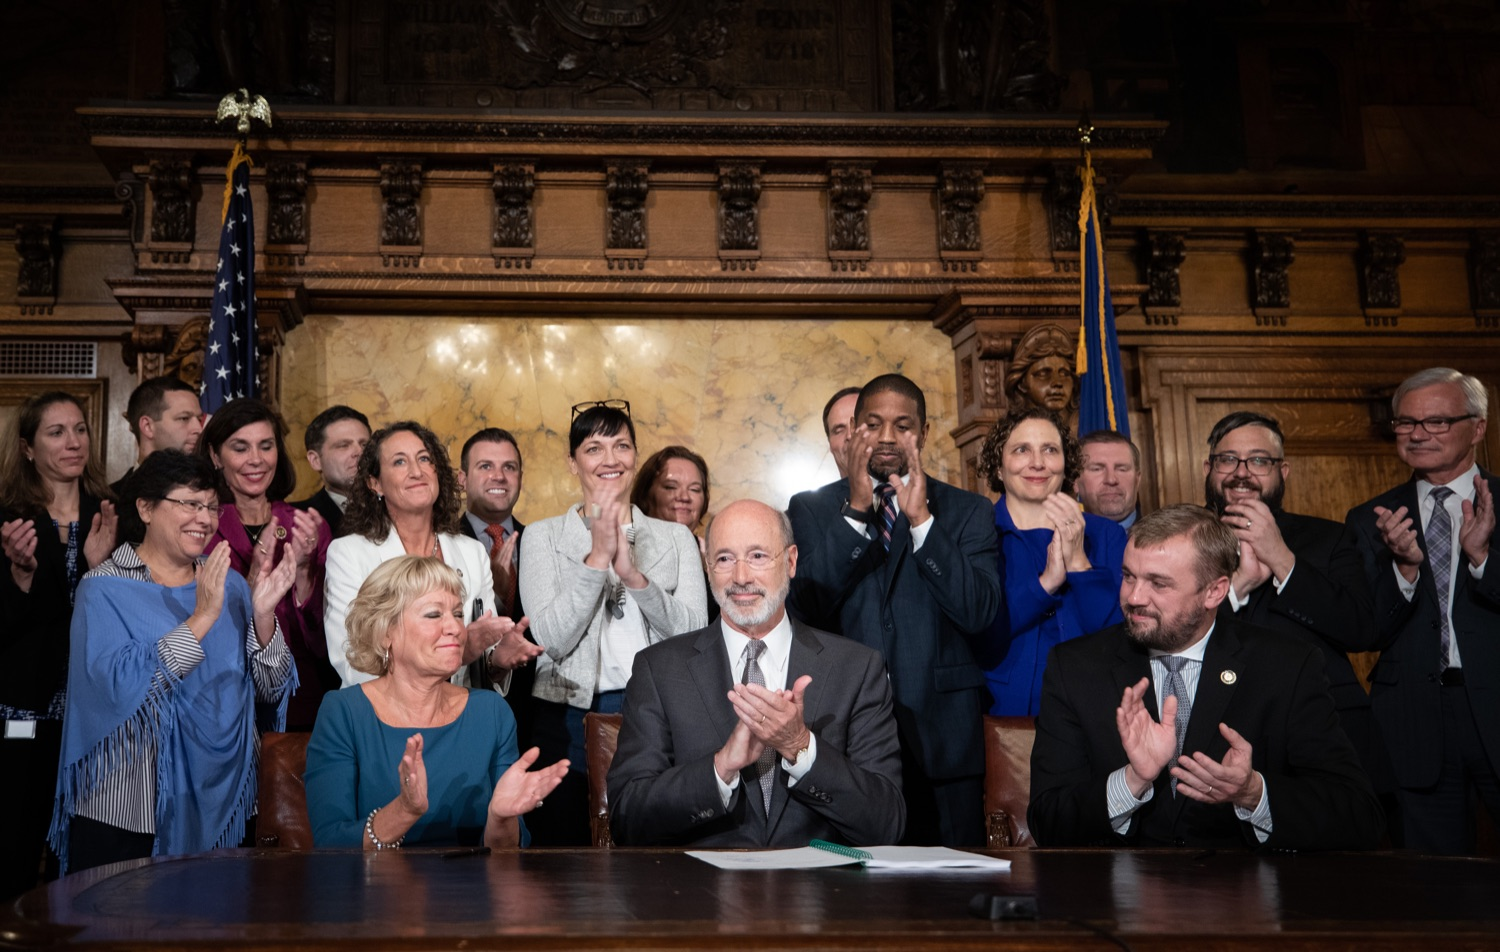 "<a href=""https://filesource.wostreaming.net/commonwealthofpa/photo/17554_gov_voter_reform_bill_dz_008.jpg"" target=""_blank"">⇣ Download Photo<br></a>Harrisburg, PA  Governor Tom Wolf signs the Election Reform Bill. Governor Wolf made voting more convenient and secure by signing Act 77 of 2019, the most significant improvement to Pennsylvanias elections in more than 80 years. The bipartisan compromise legislation takes effect for the April 2020 primary election and makes Pennsylvania a national leader with voter-friendly election reforms."